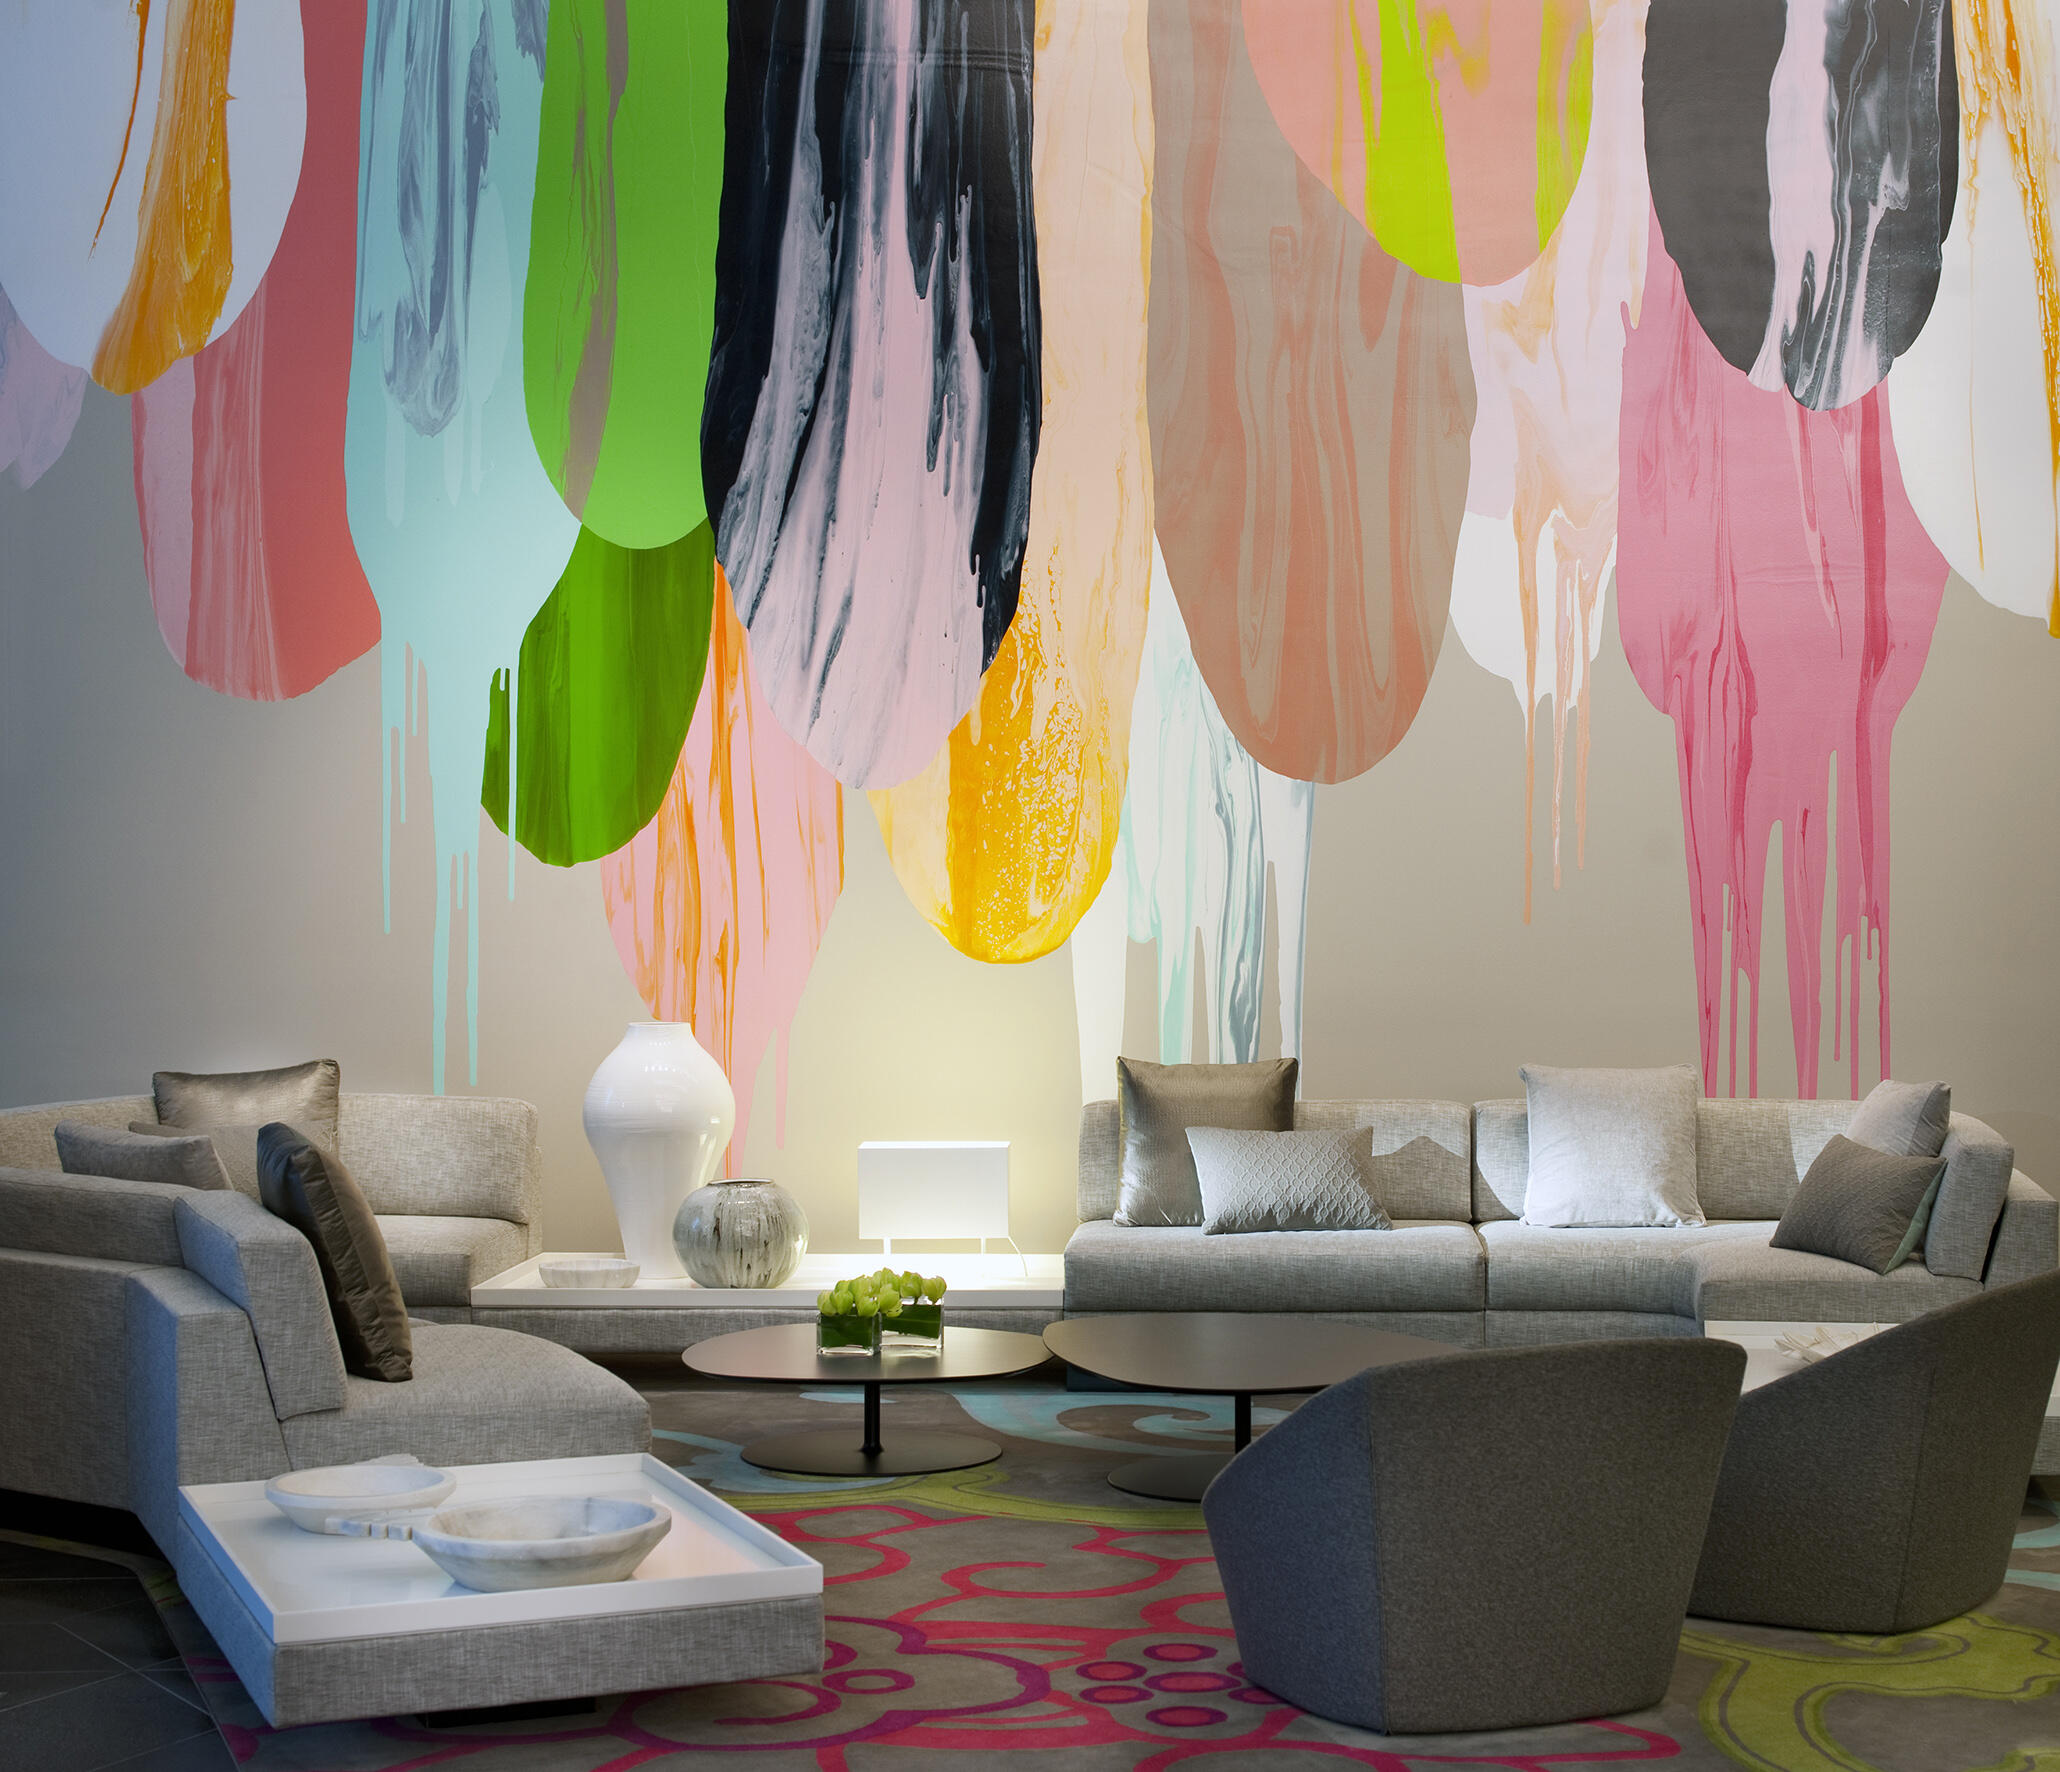 Lobby area with iconic wall art at Crown Hotels